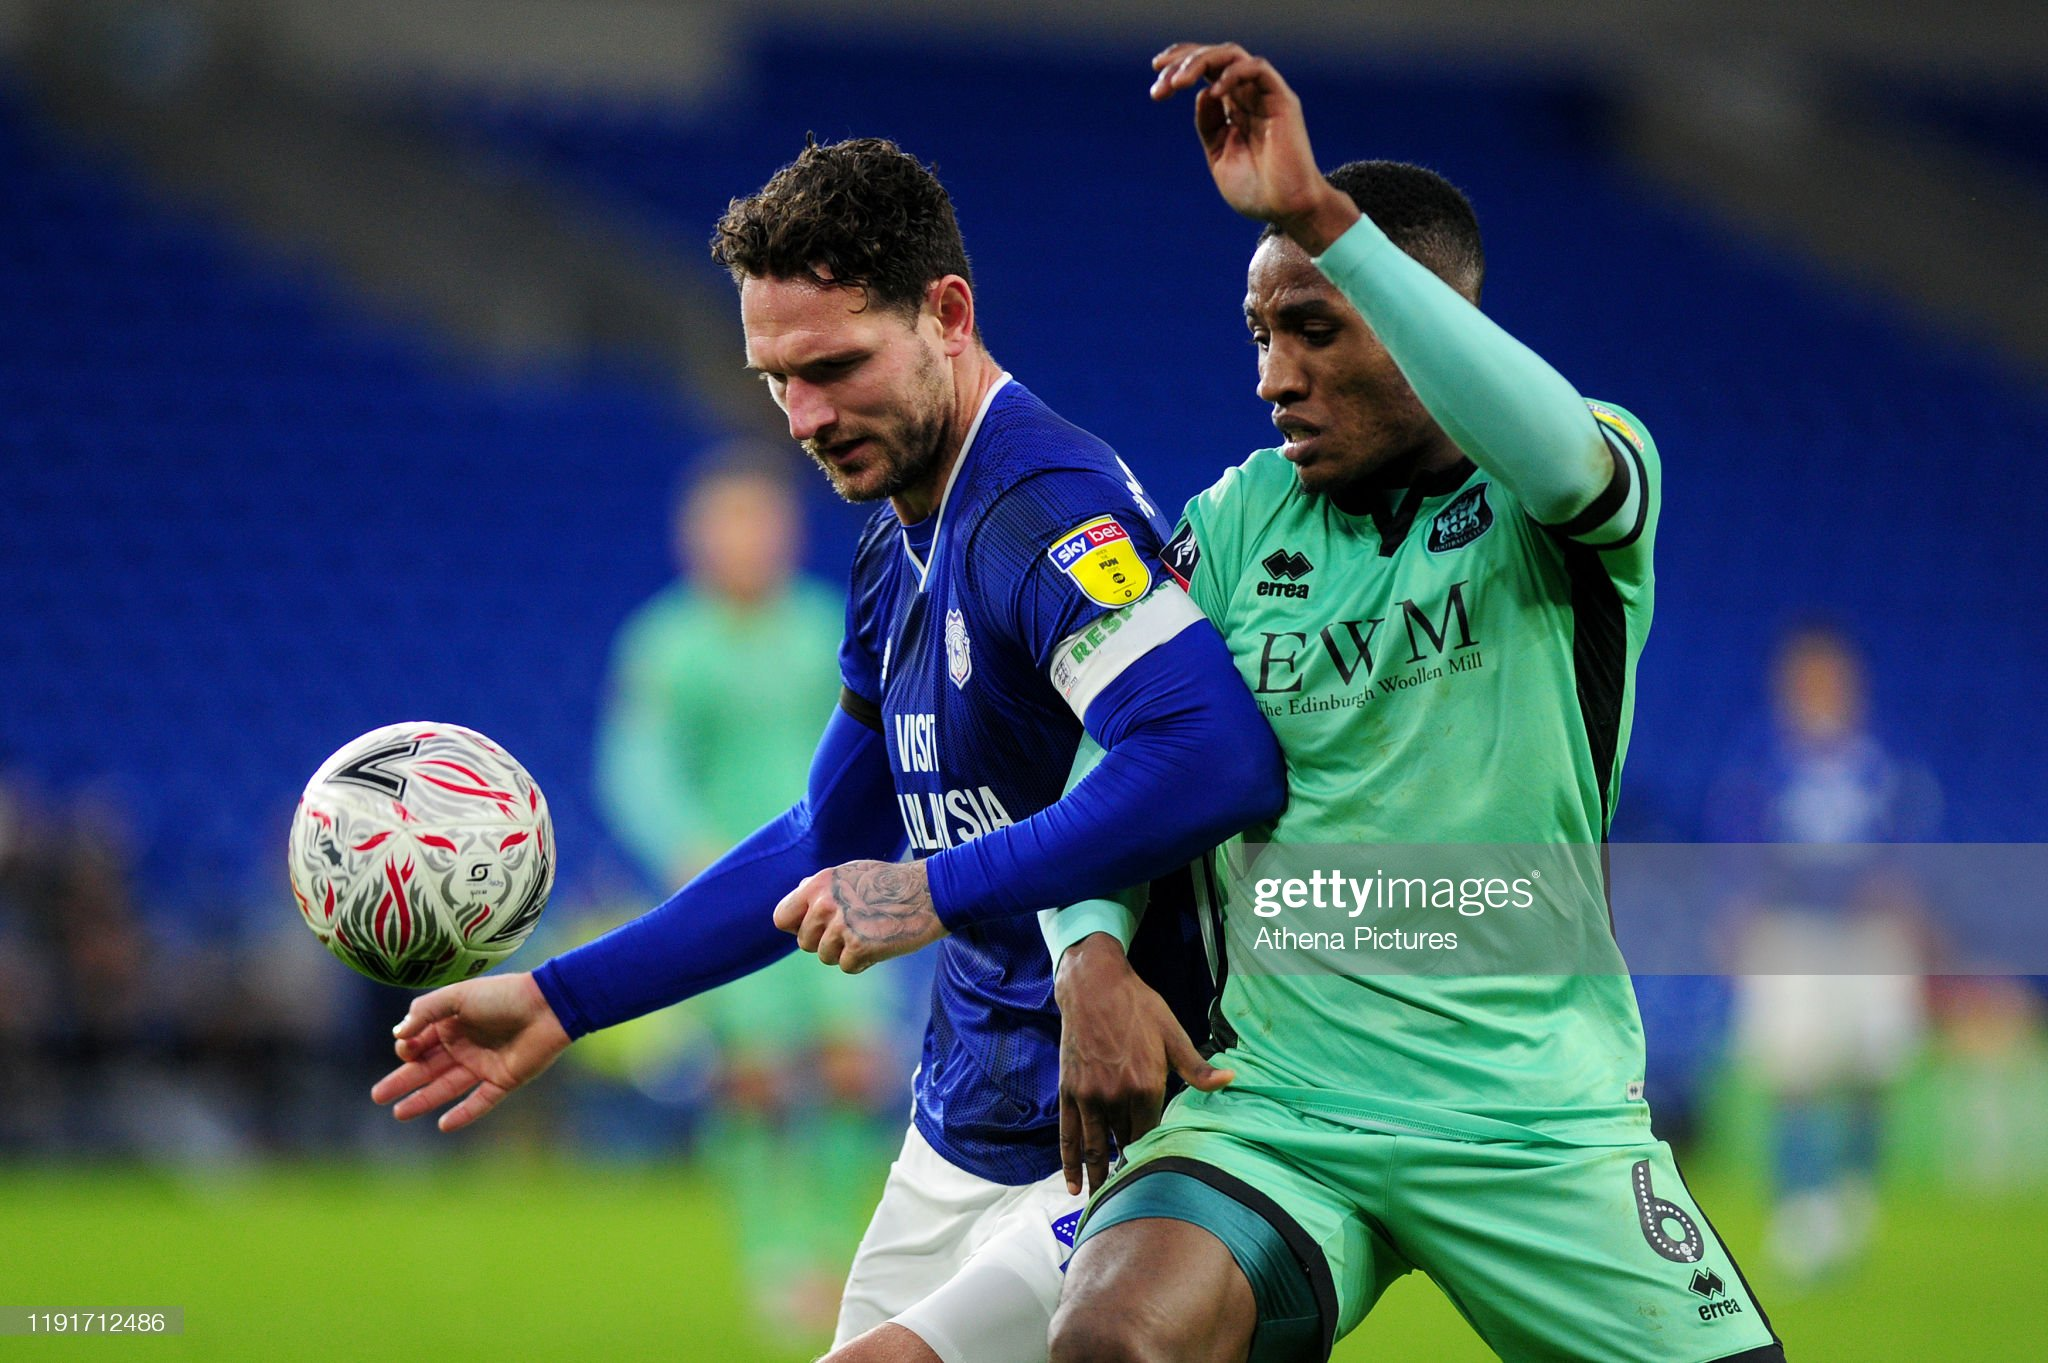 Carlisle v Cardiff preview, prediction and odds